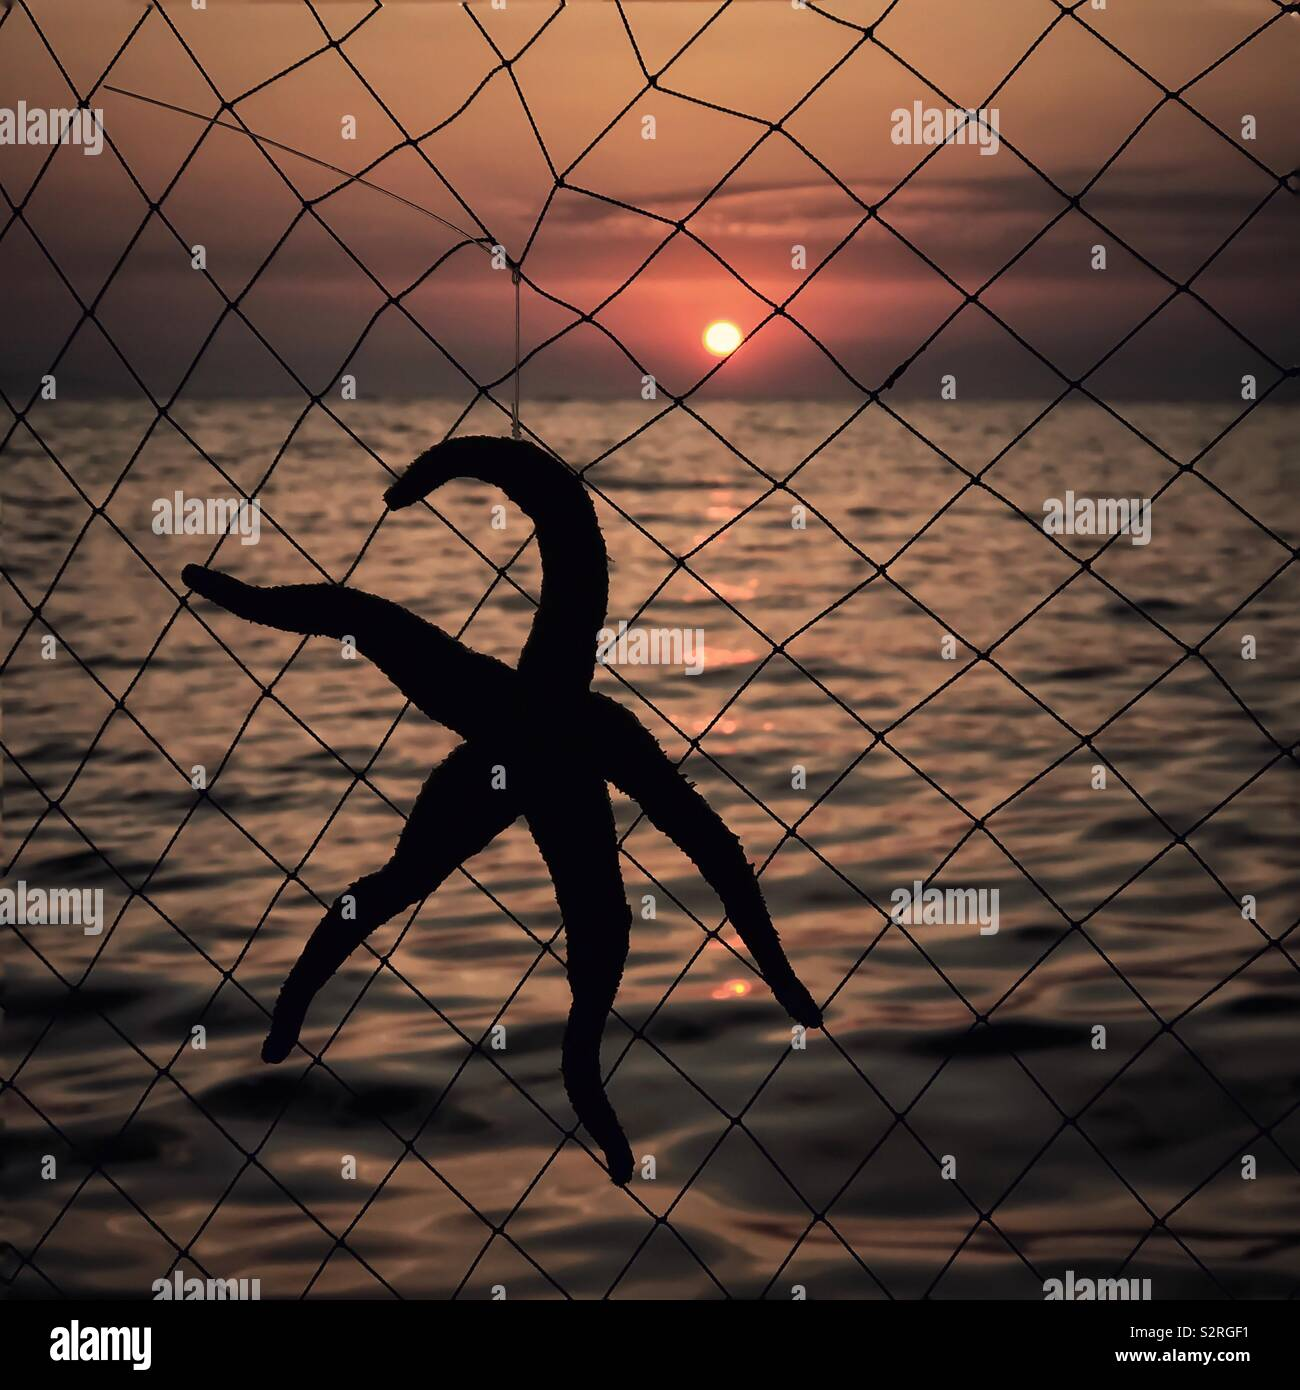 A starfish decoration hanging on the net of a fence against a sunset by the sea Mavişehir Turkey Stock Photo